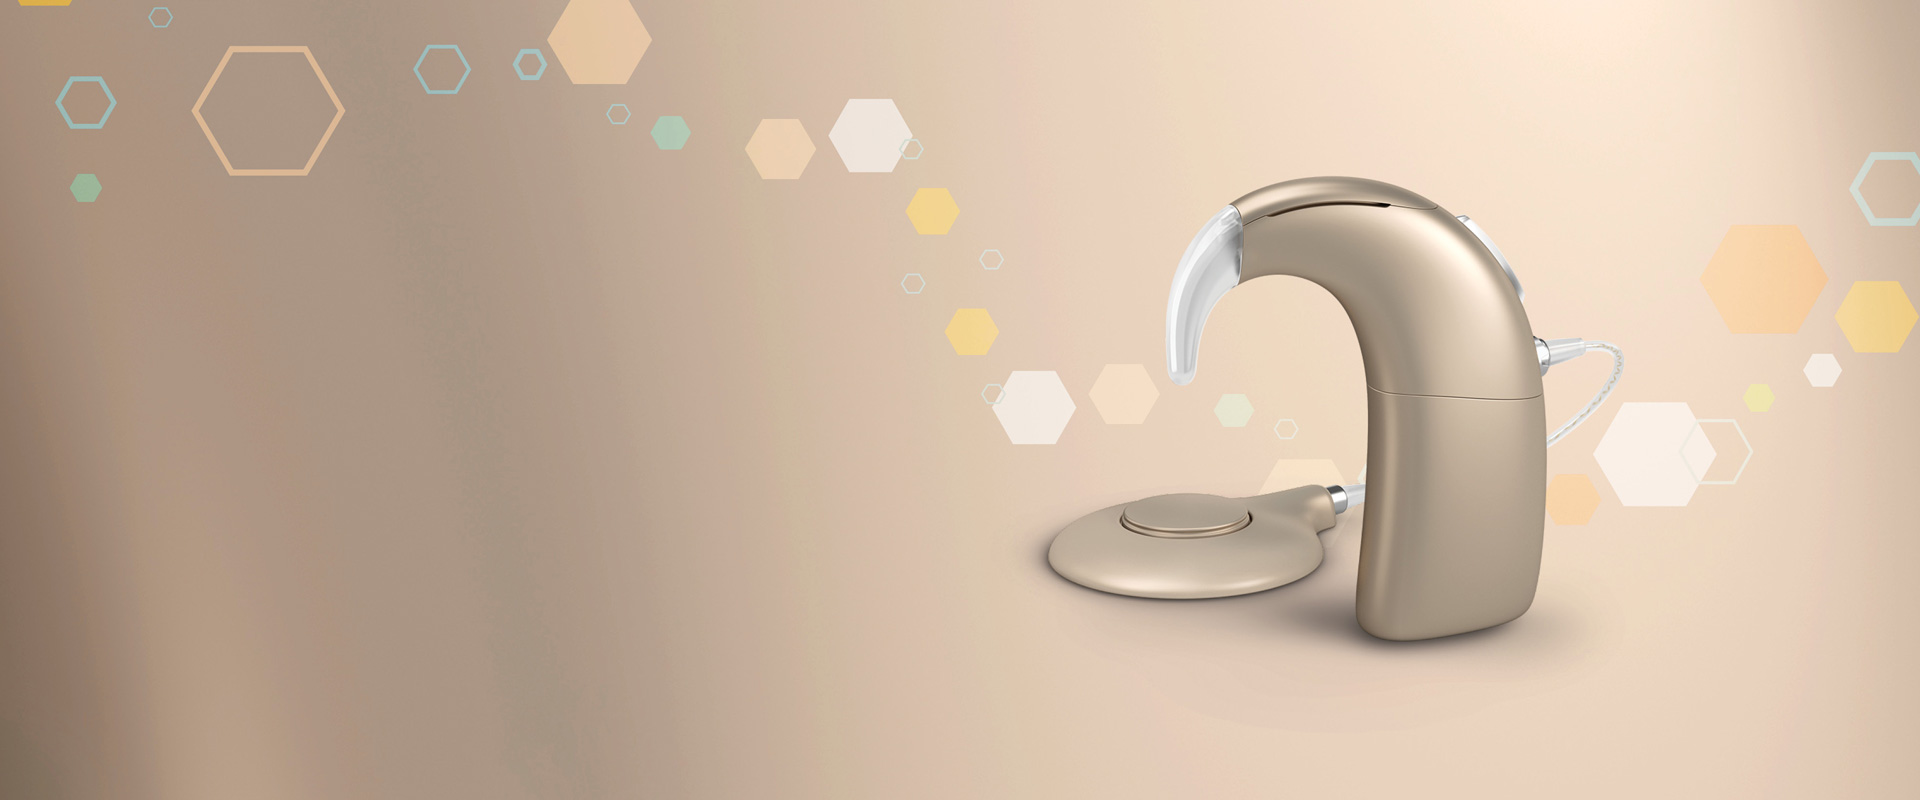 Neuro 2 is the smallest Behind-The-Ear cochlear sound processor on the market